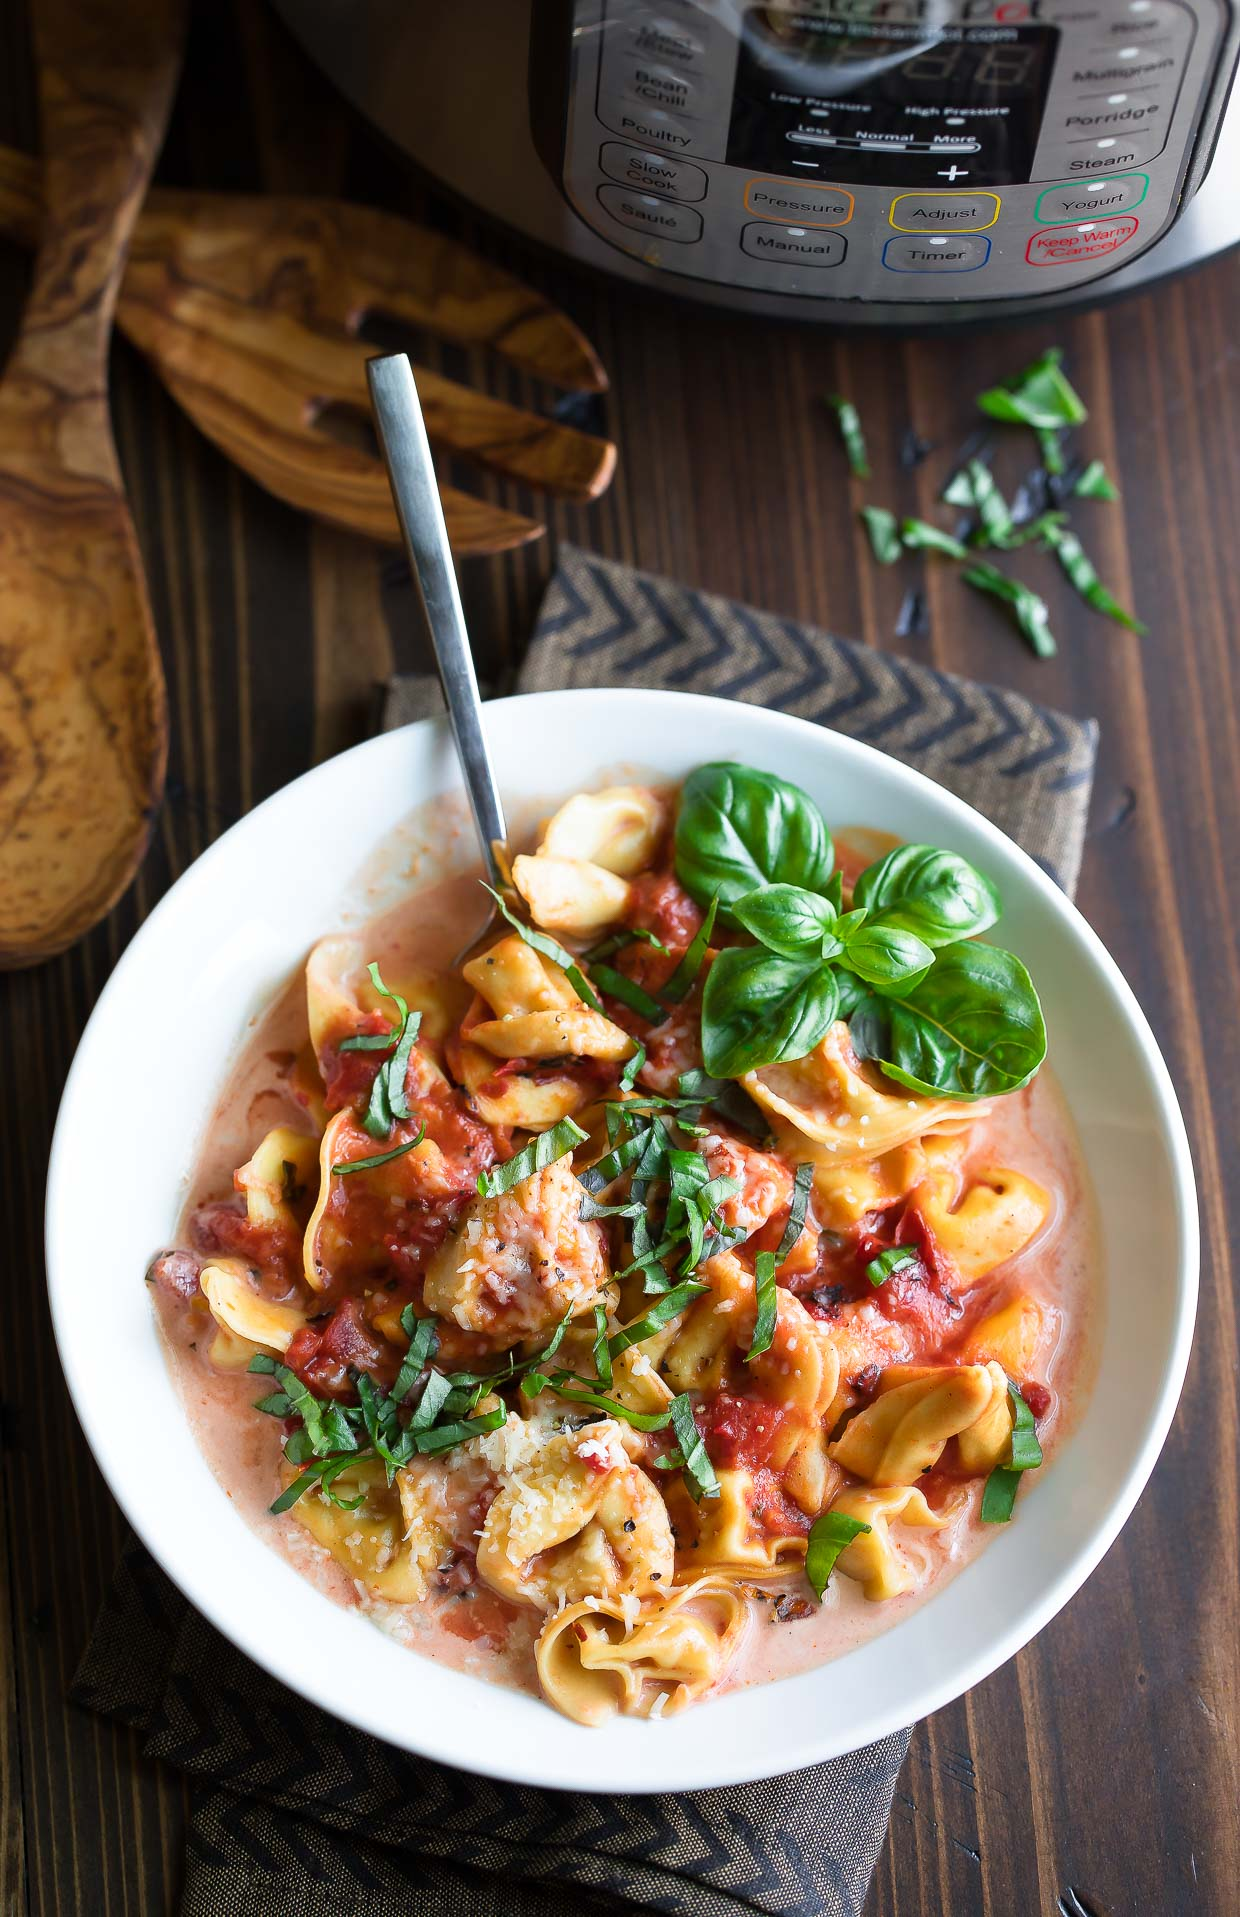 Basil Tortellini and Instant Pot